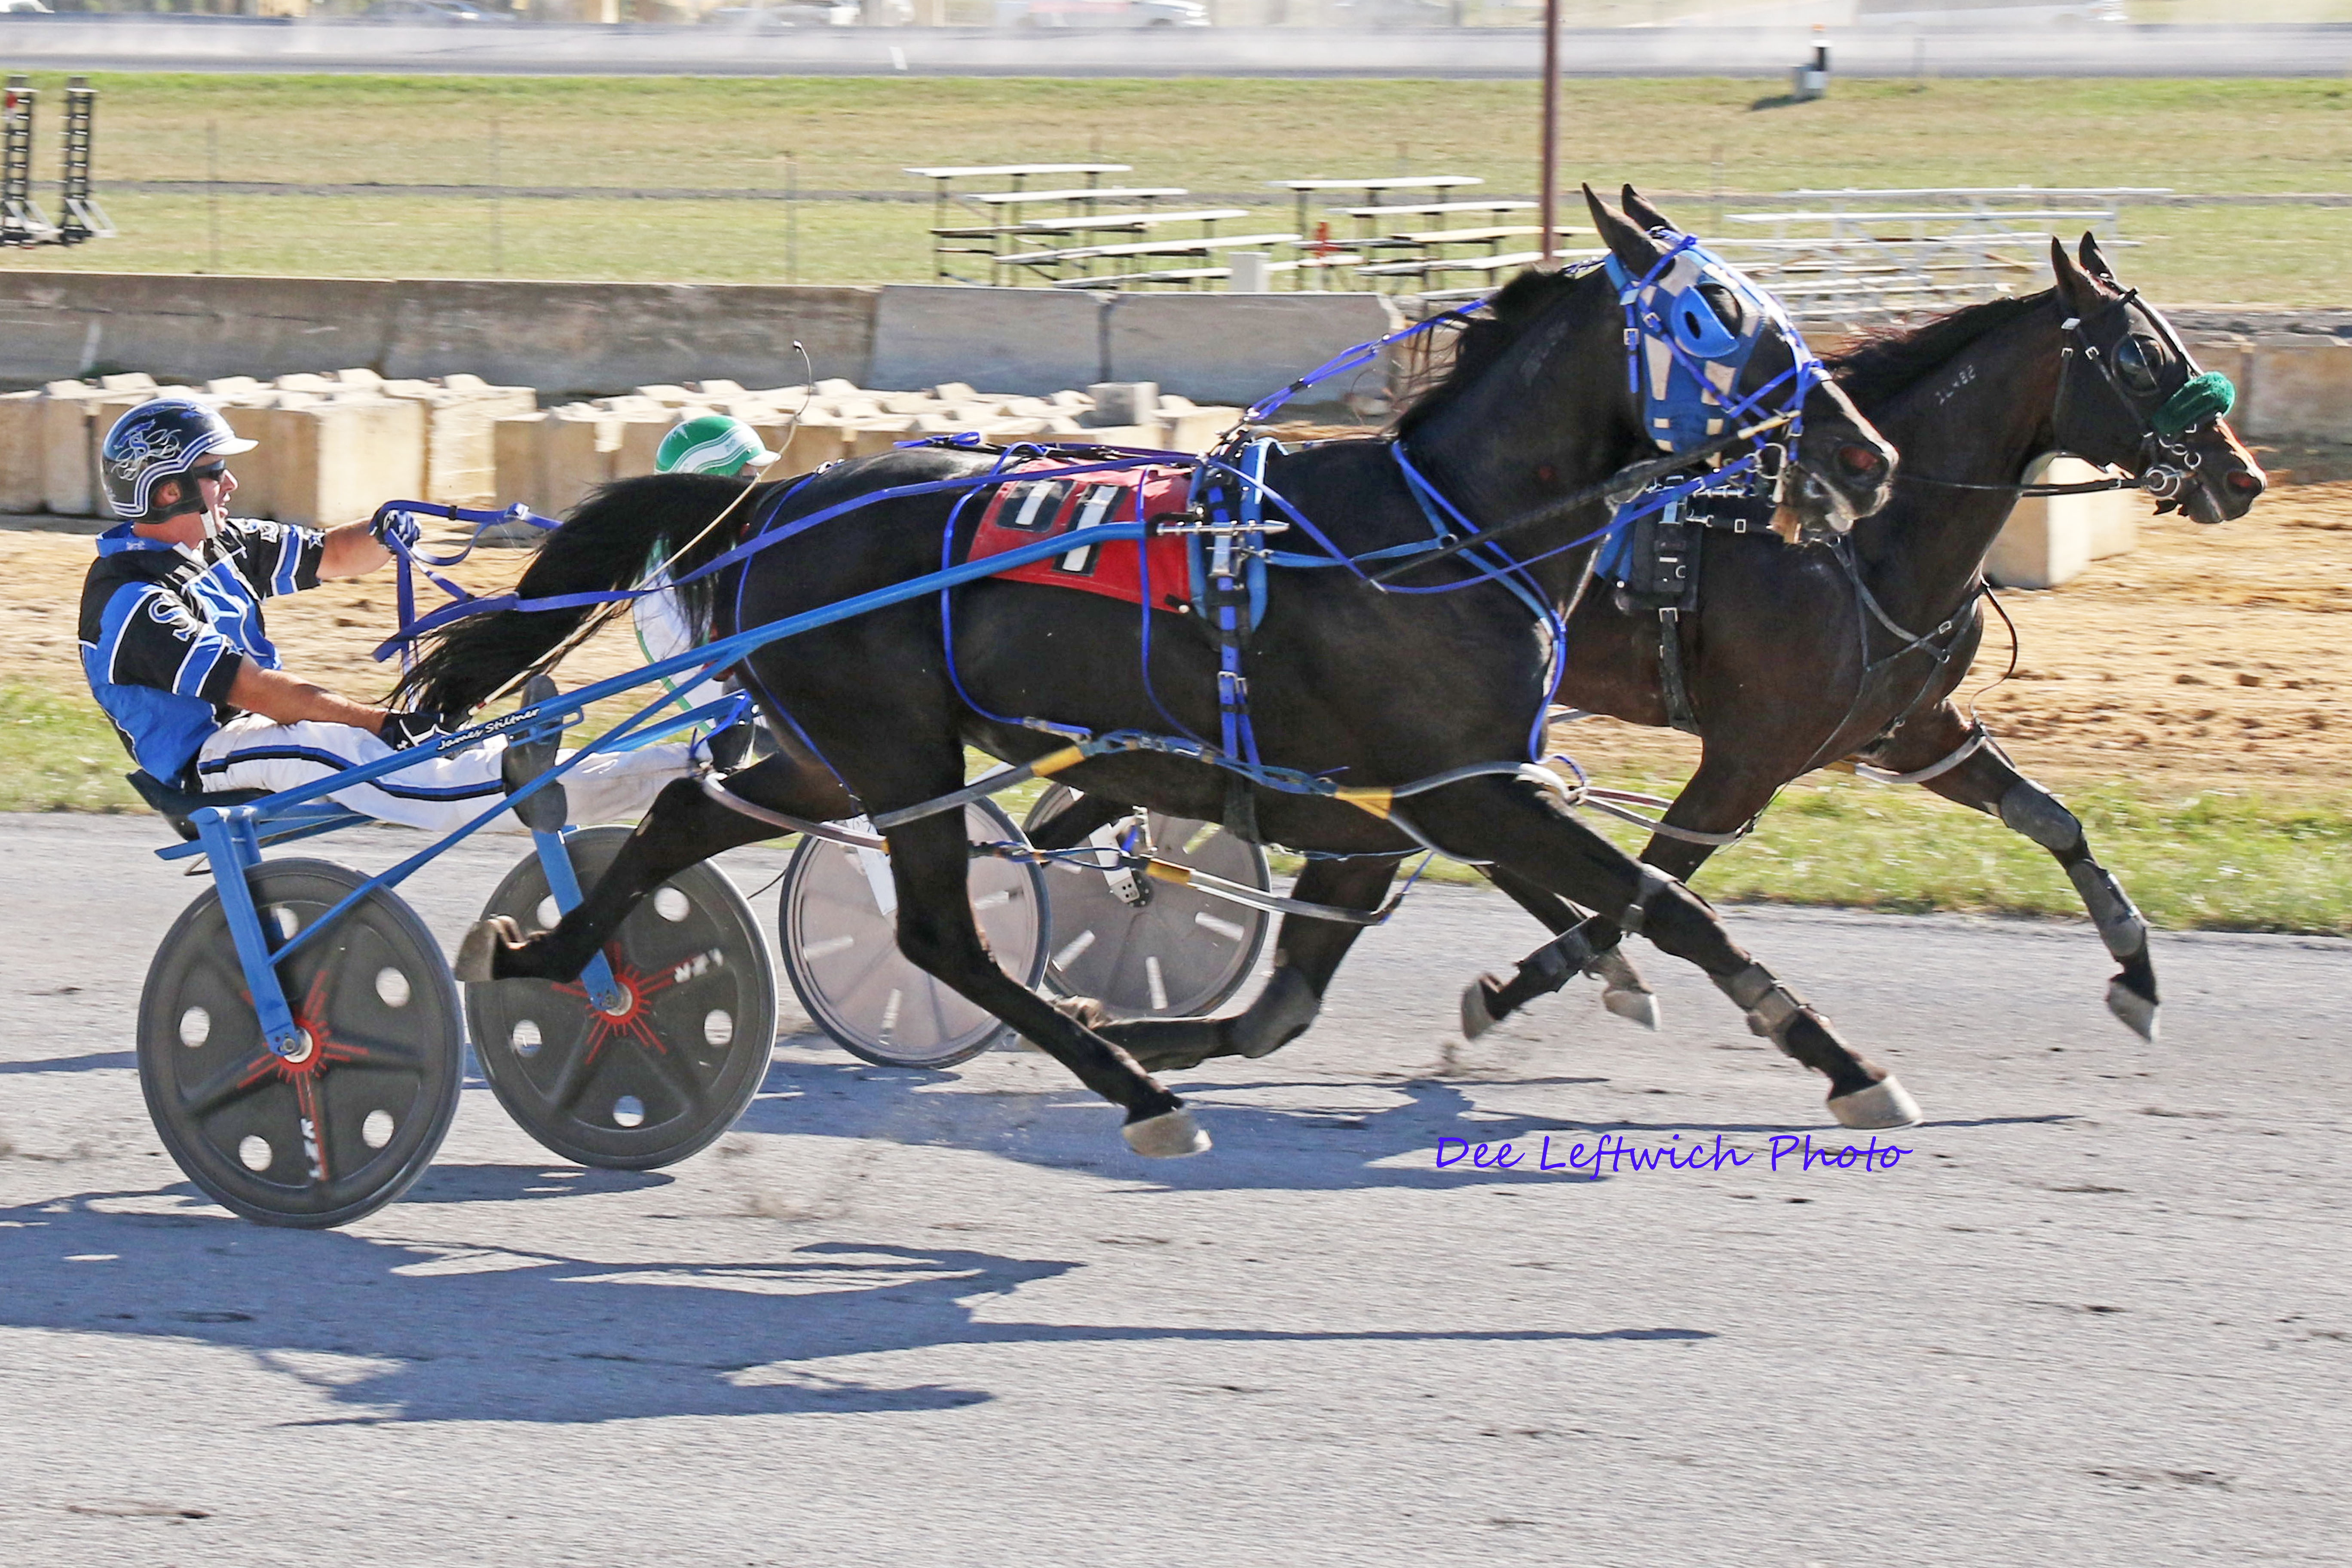 Scenes From Shenandoah Downs Harness Racing On September 23rd